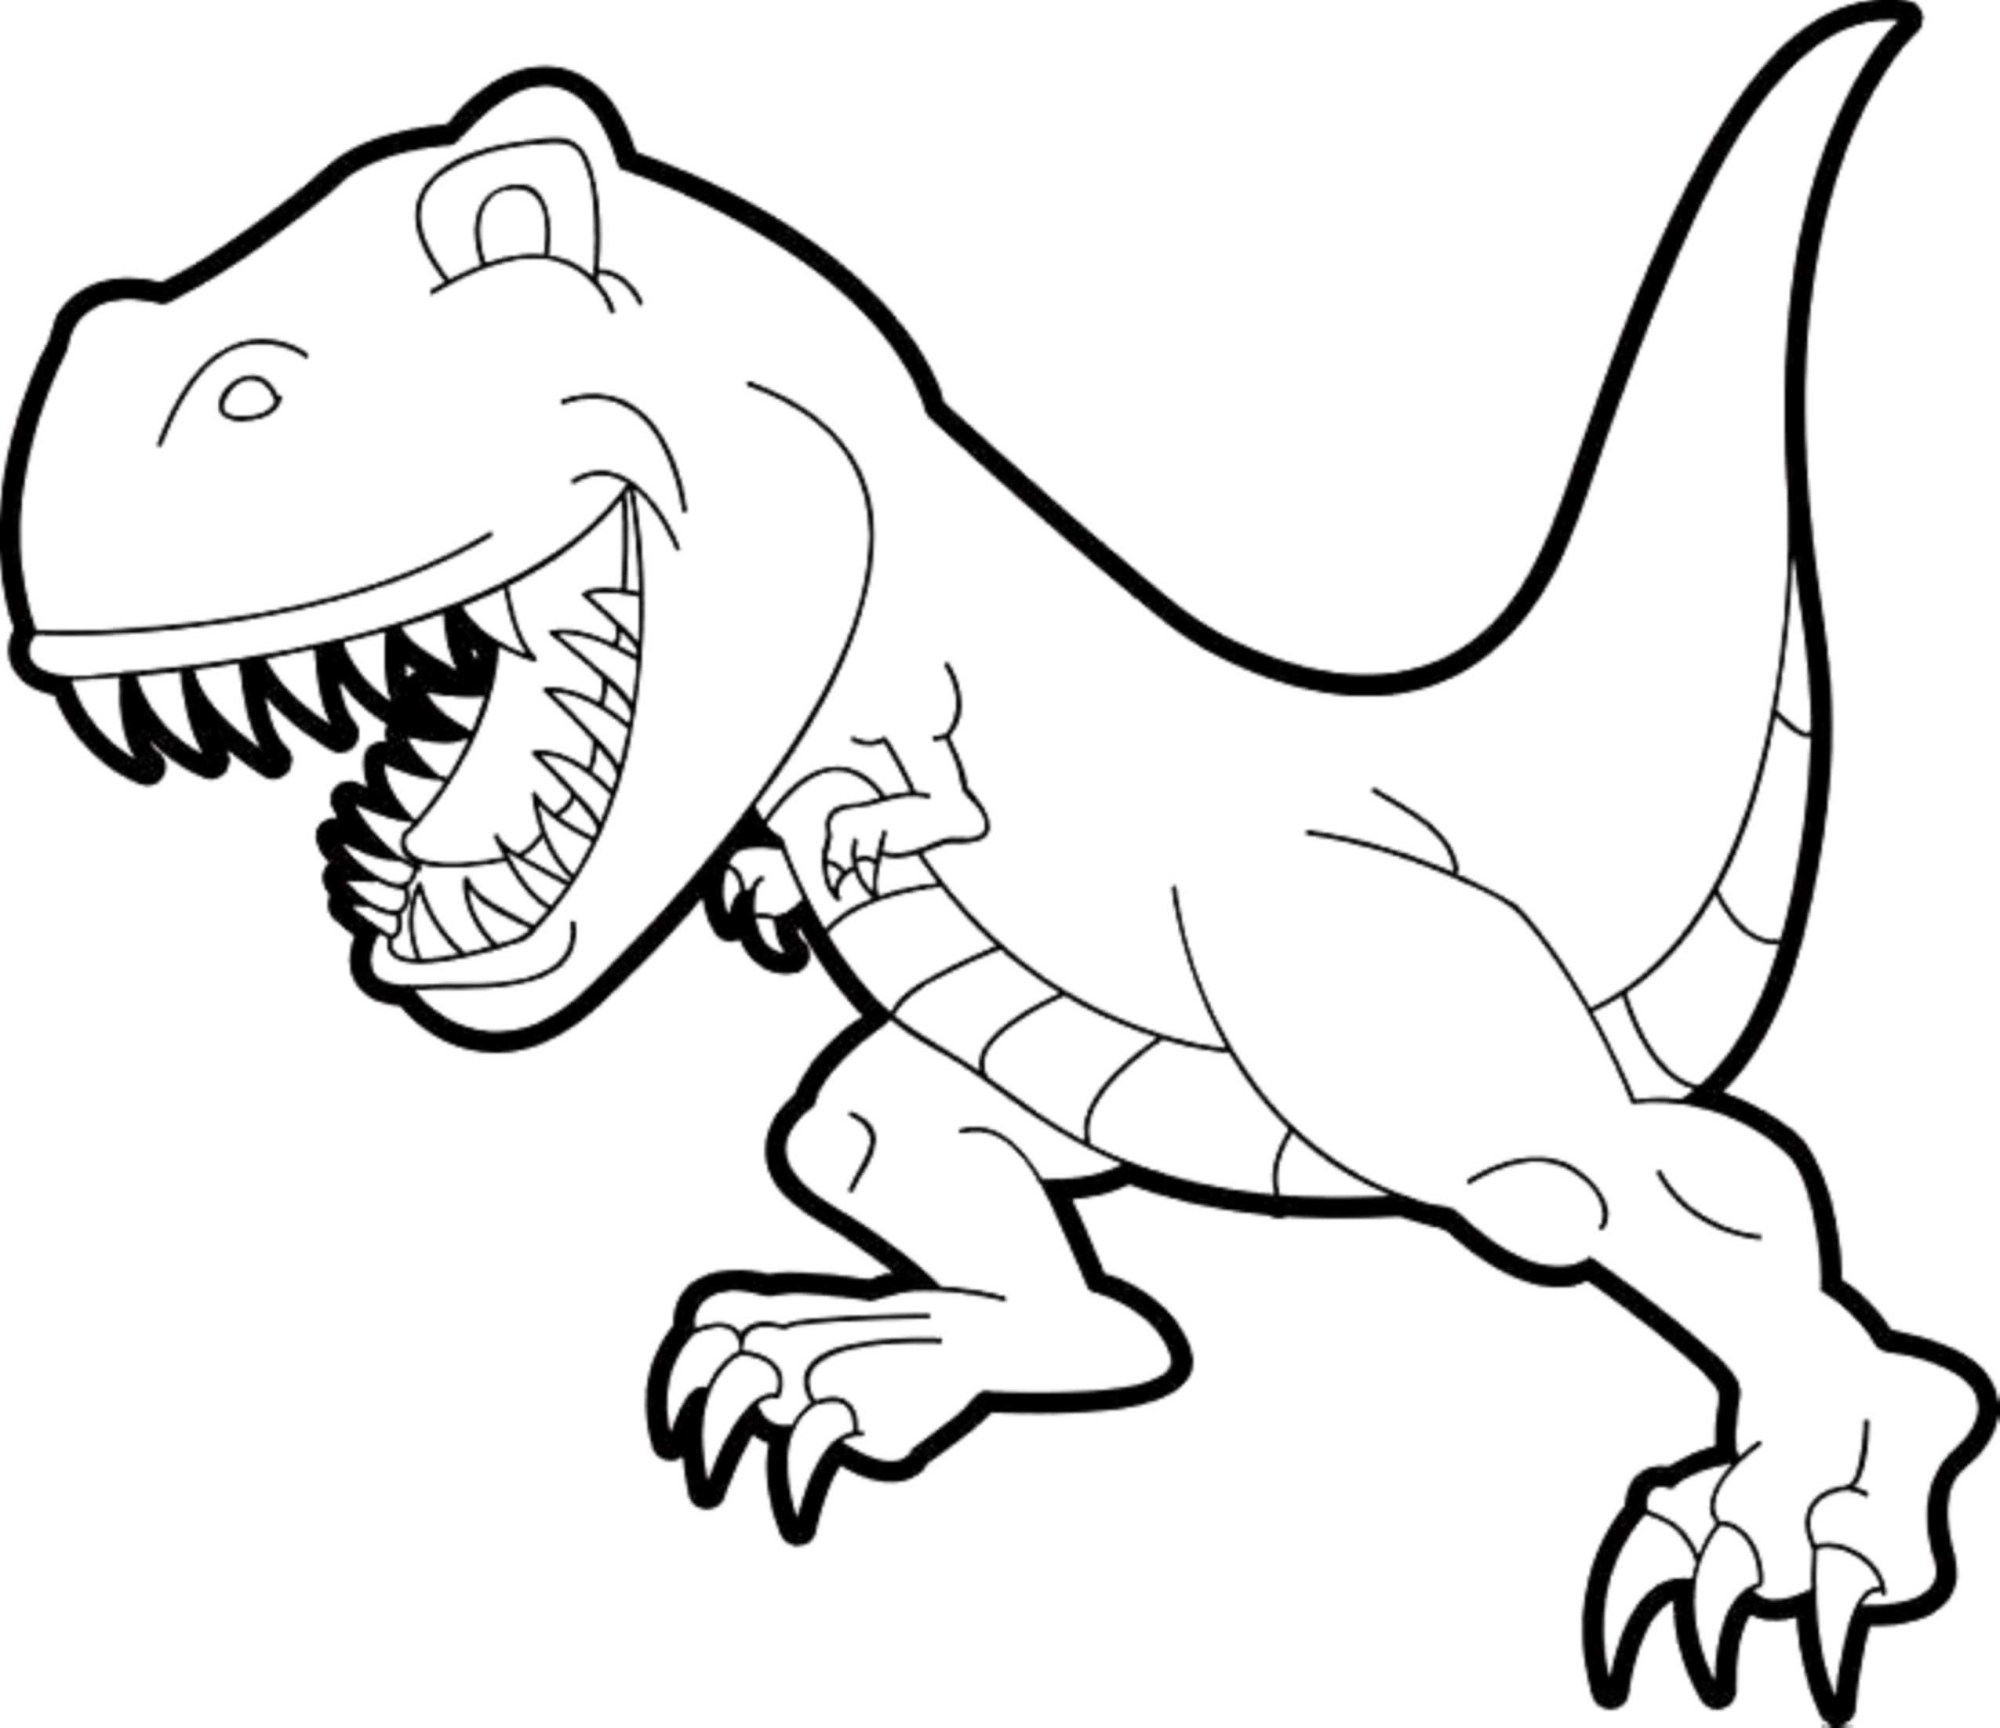 hight resolution of simple t rex drawing